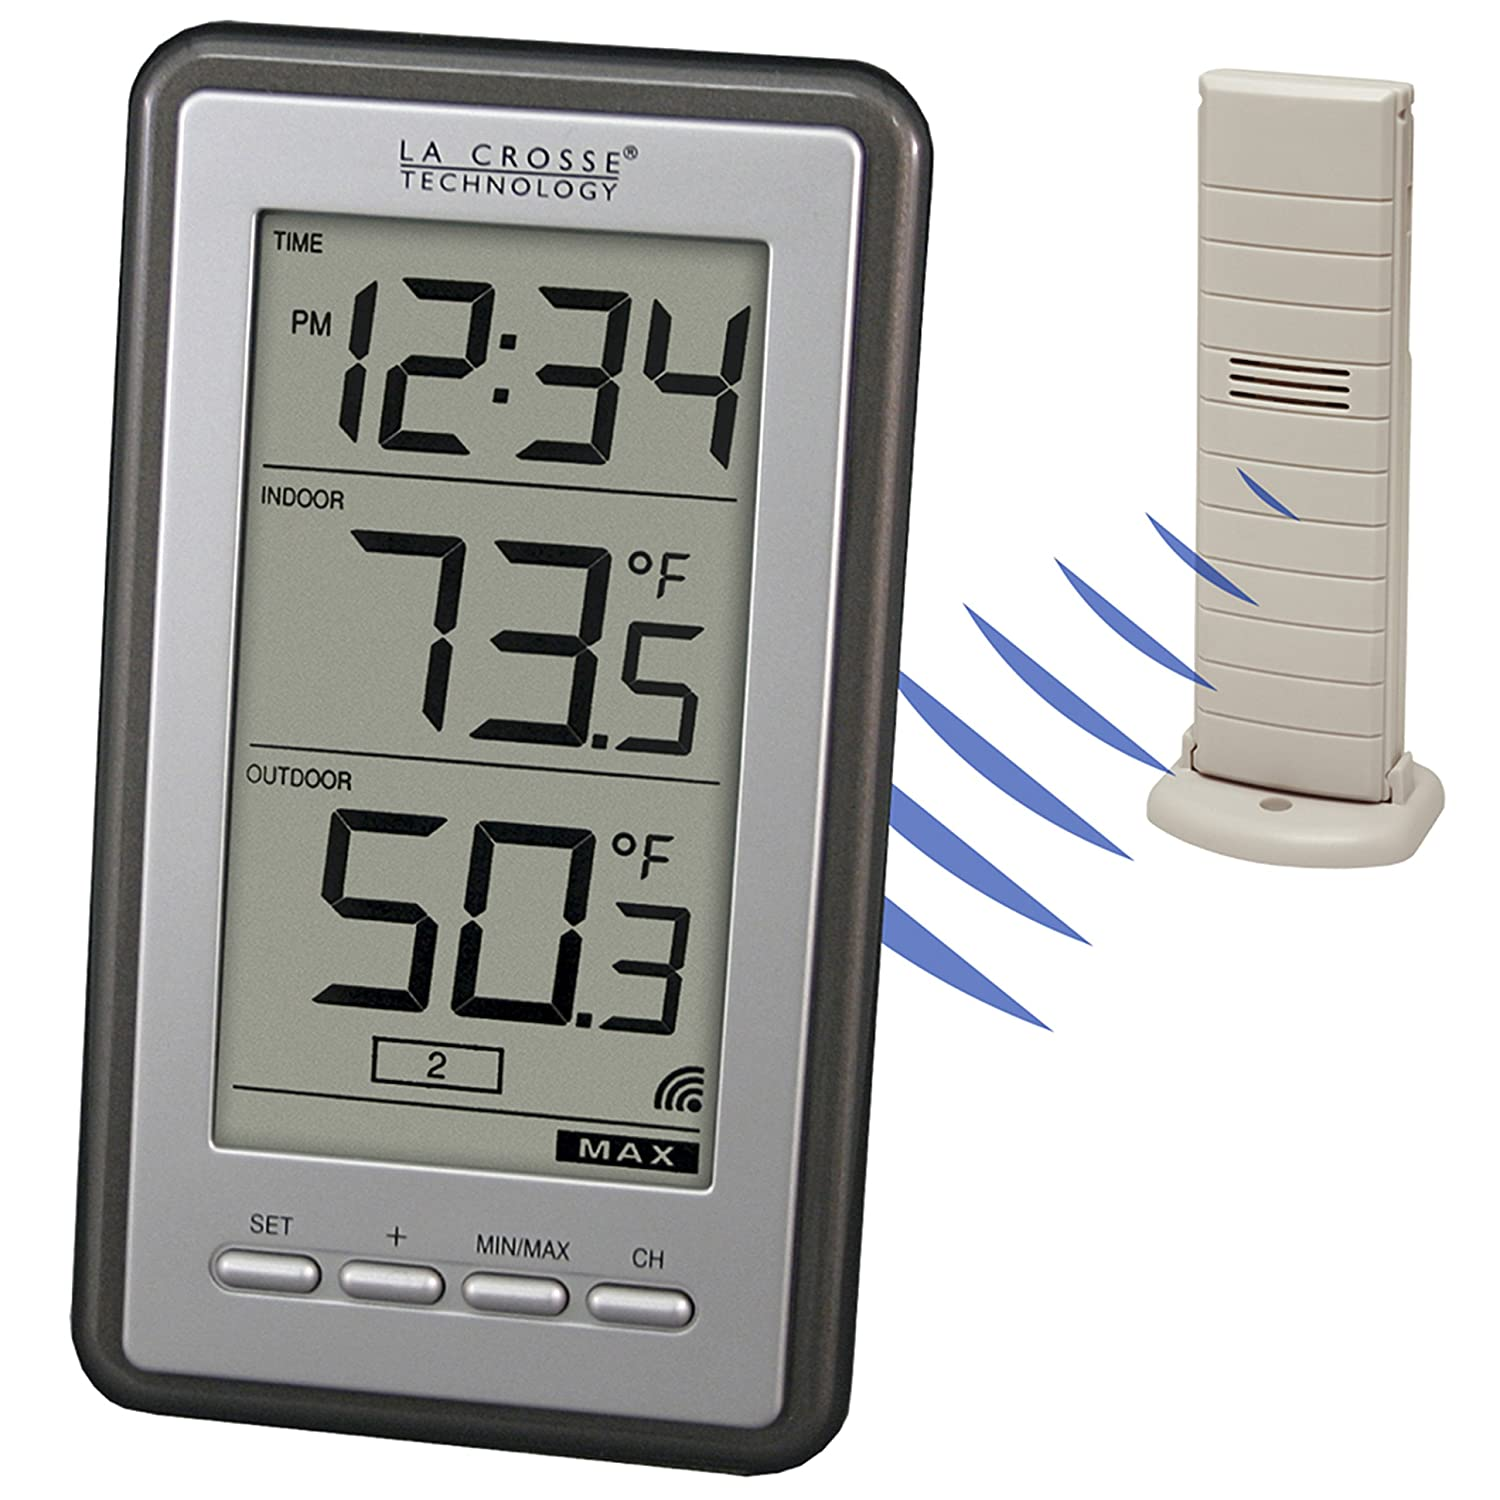 wireless indoor outdoor thermometer Amazon.com: La Crosse Technology WS 9160U IT INT Digital  wireless indoor outdoor thermometer